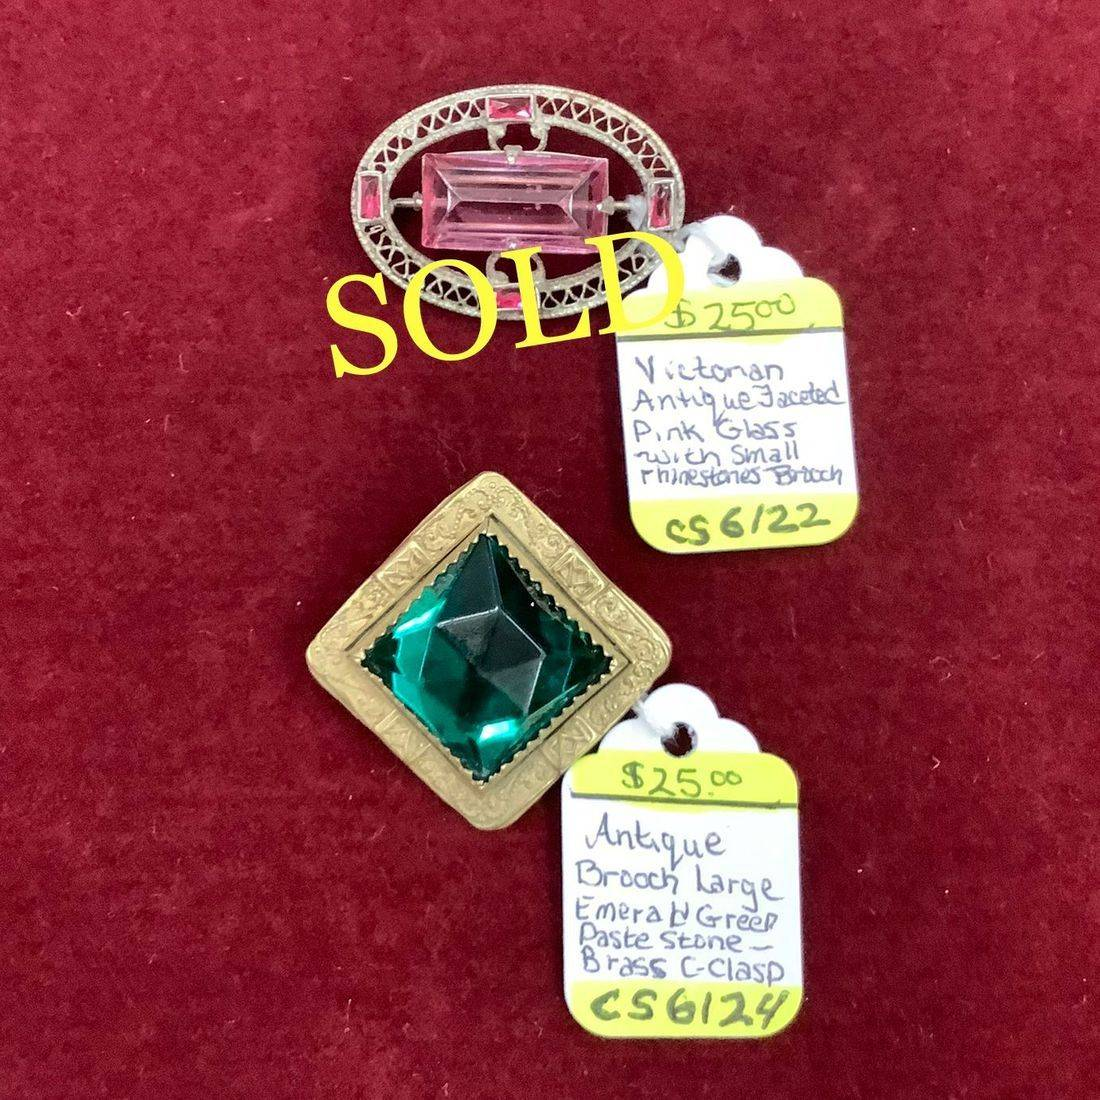 Victorian Antique Brooches  $25.00 each